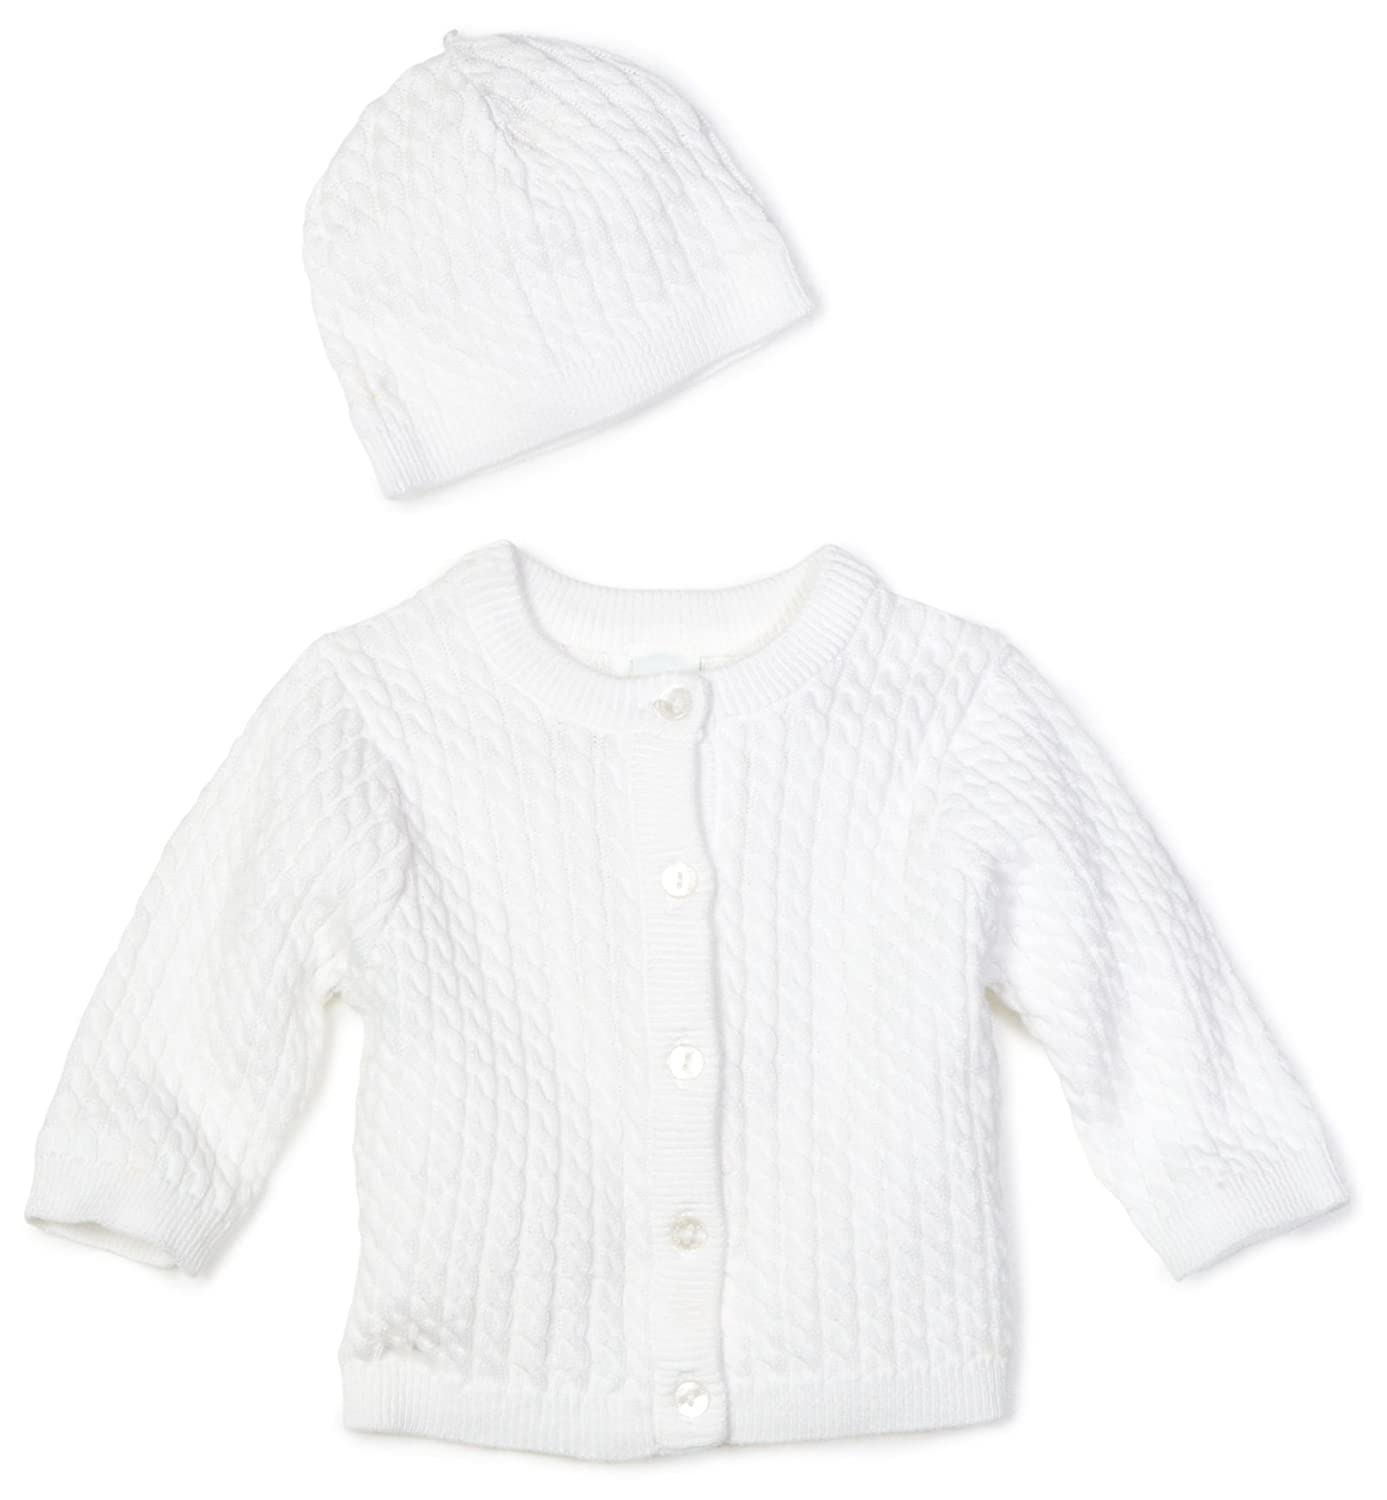 Little Me Unisex-baby Newborn Lovable Cable Sweater Mamiye Brothers Inc. (Little Me)